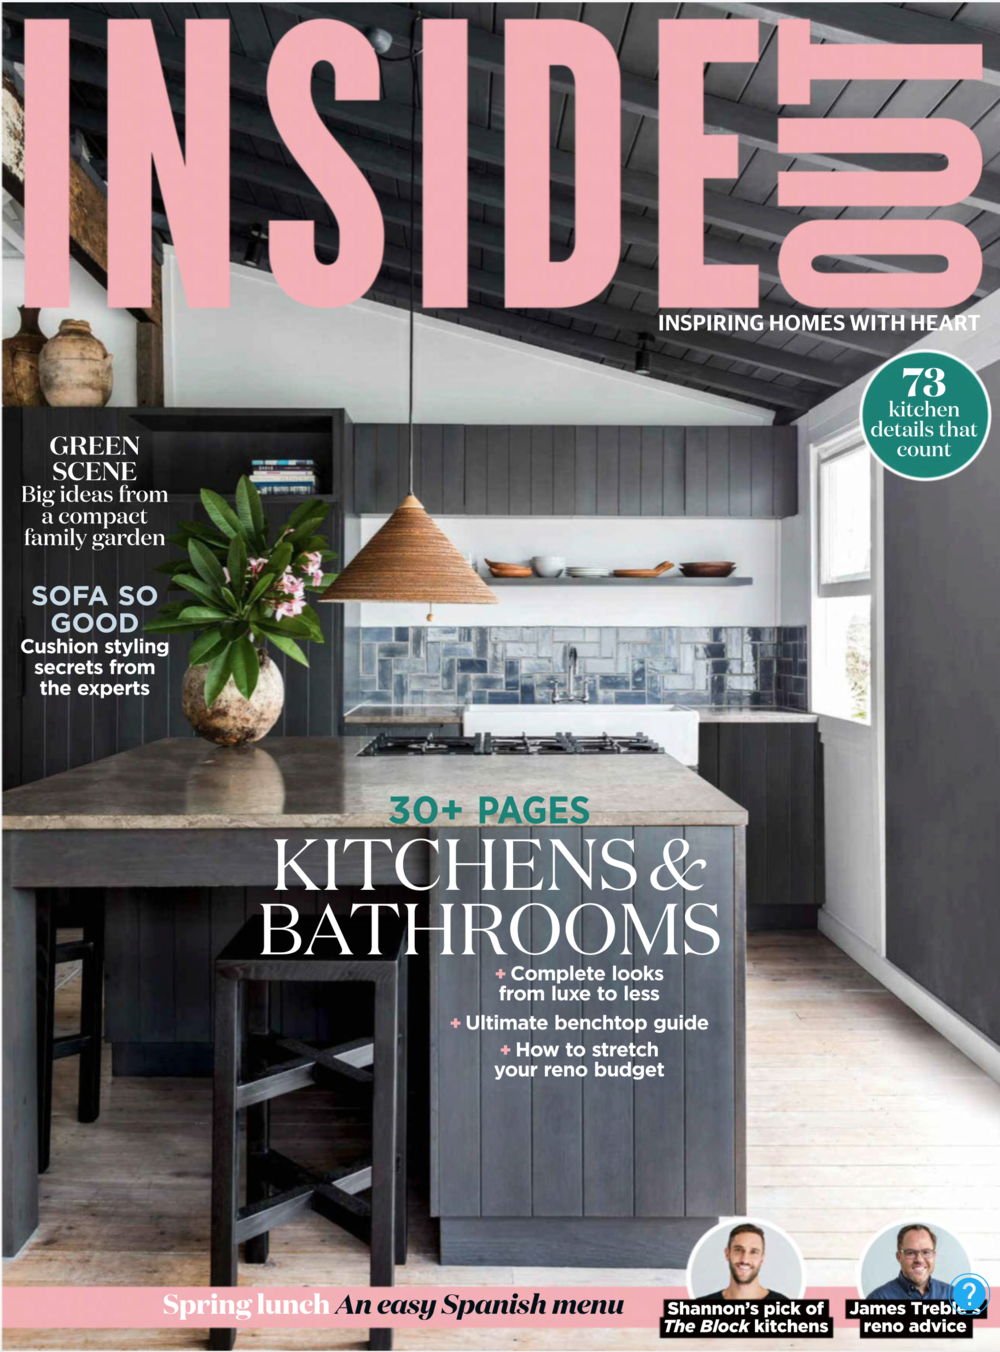 Inside Out Oct 2018 - Northern Beaches home by Kate Manning Design. Styling by Jason Mowen Cover and spread